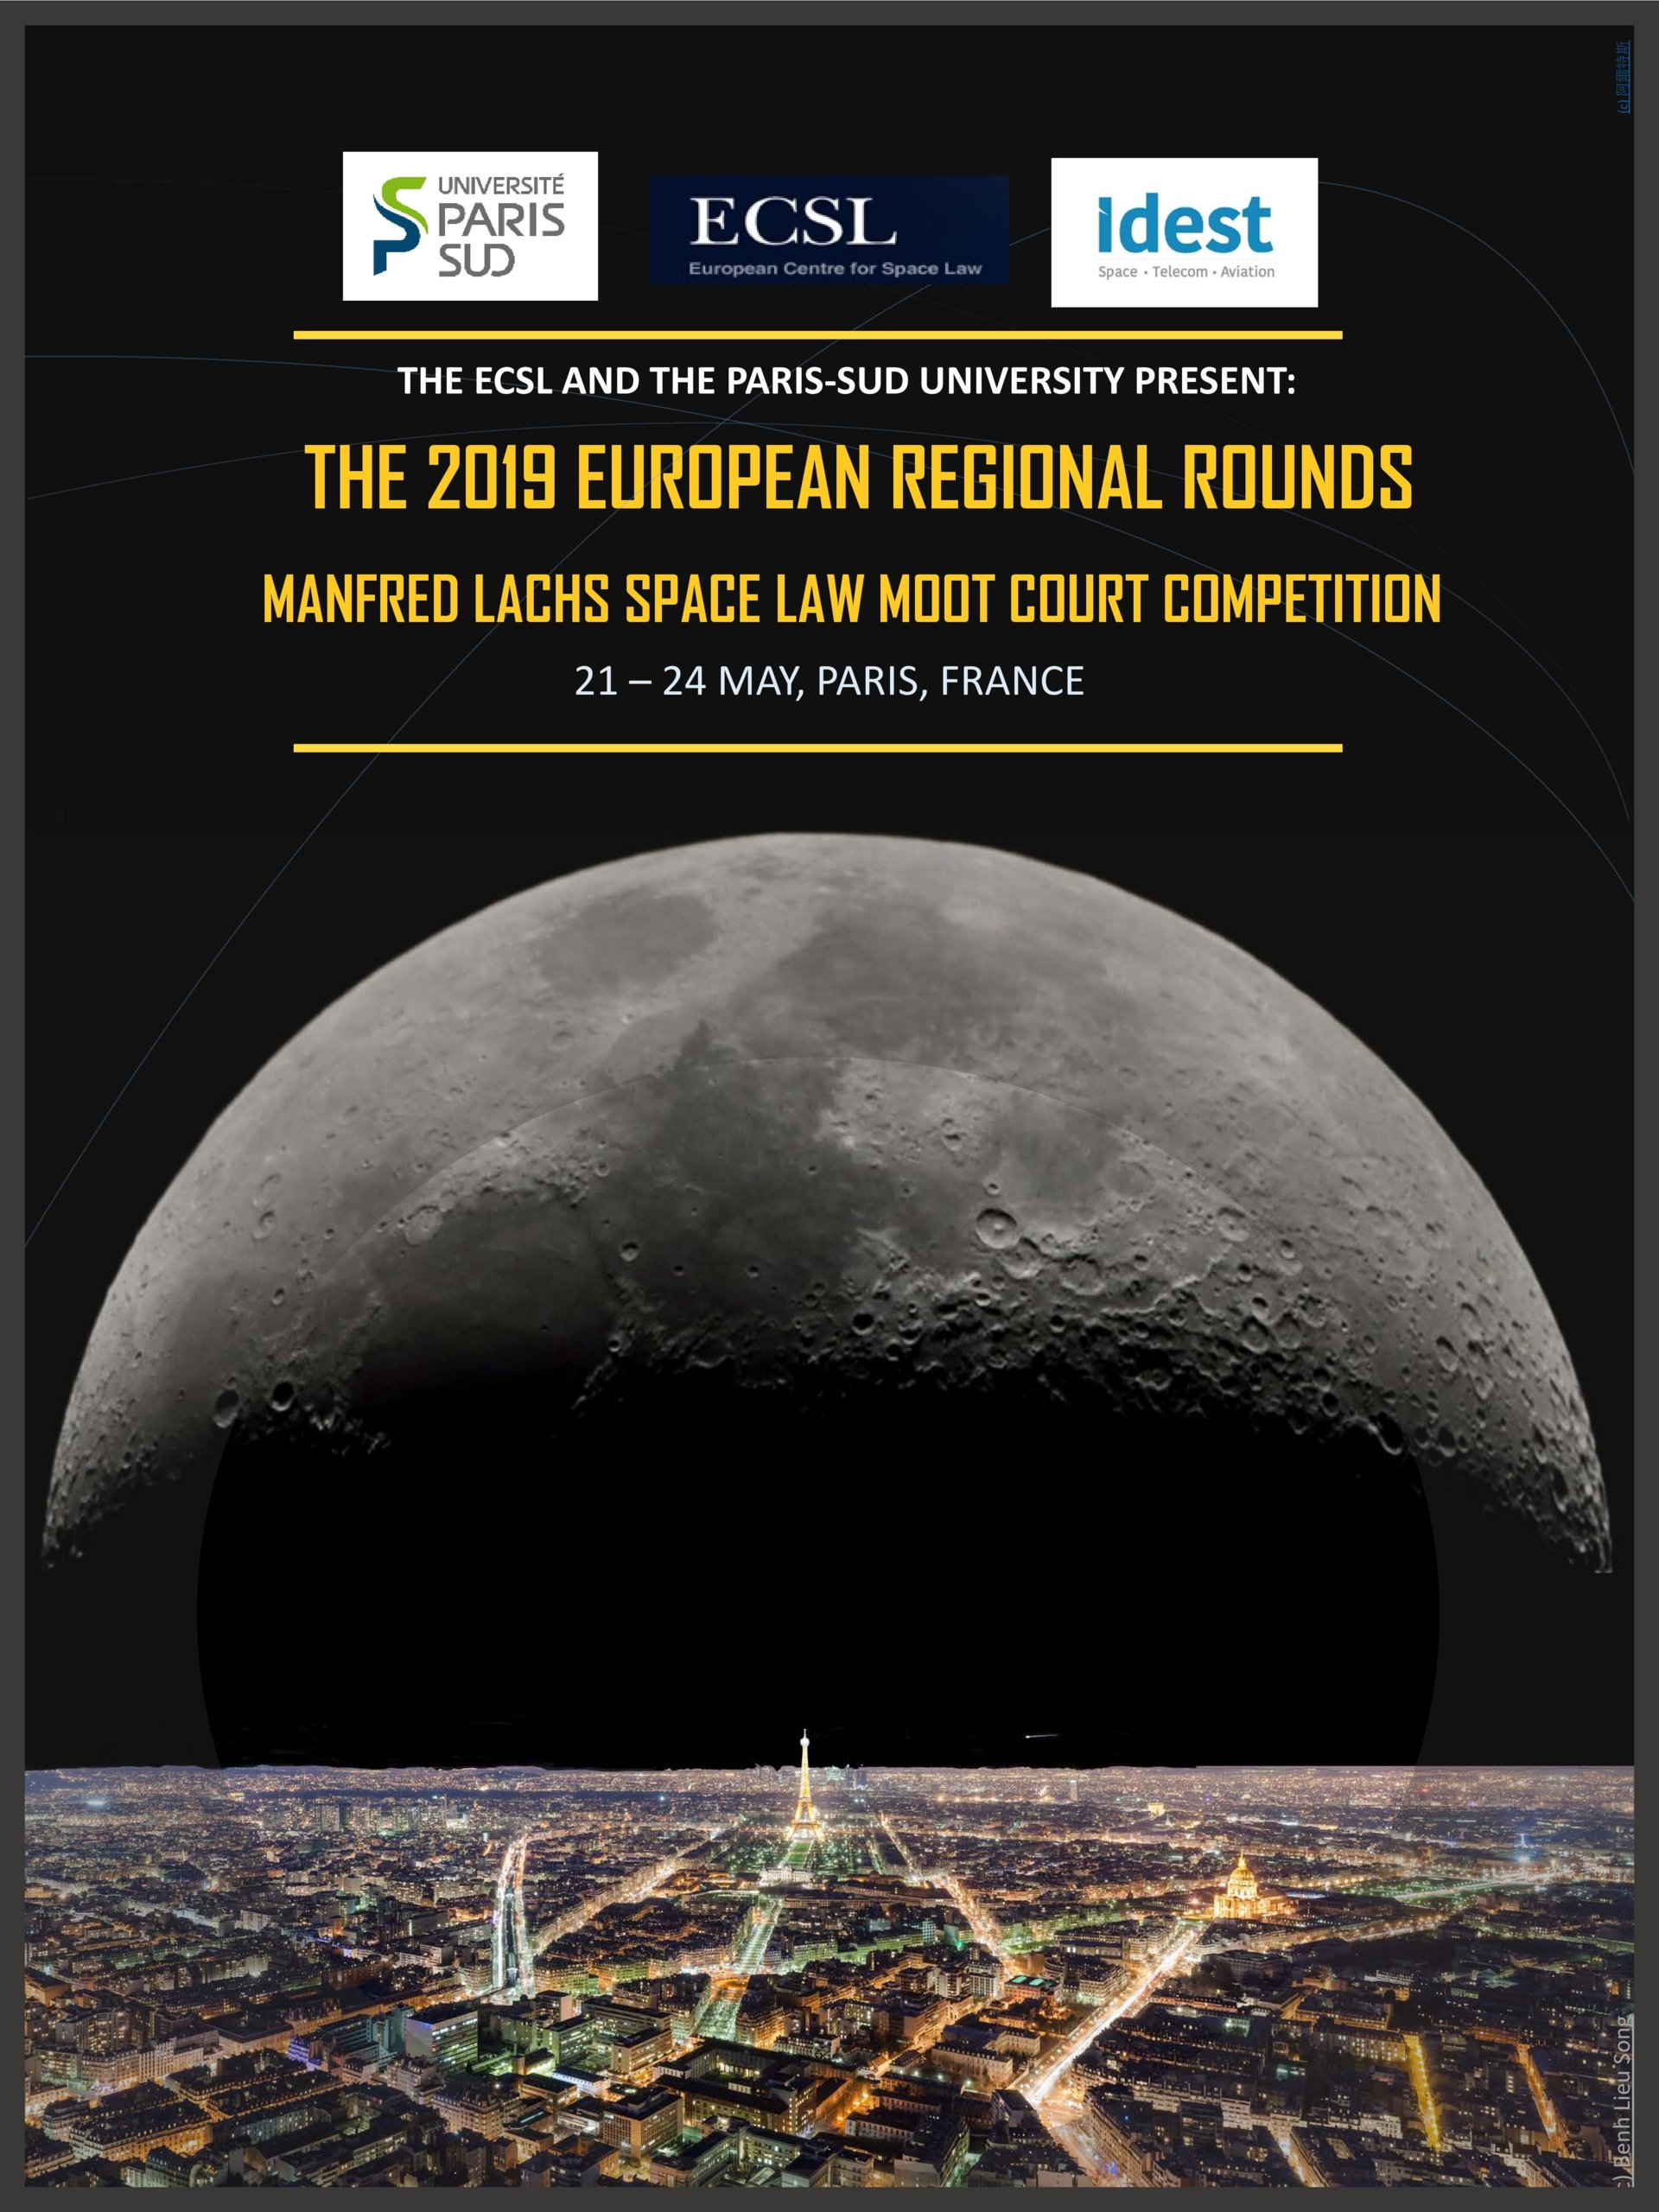 Manfred Lachs Space Law Moot Court Competition / ECSL